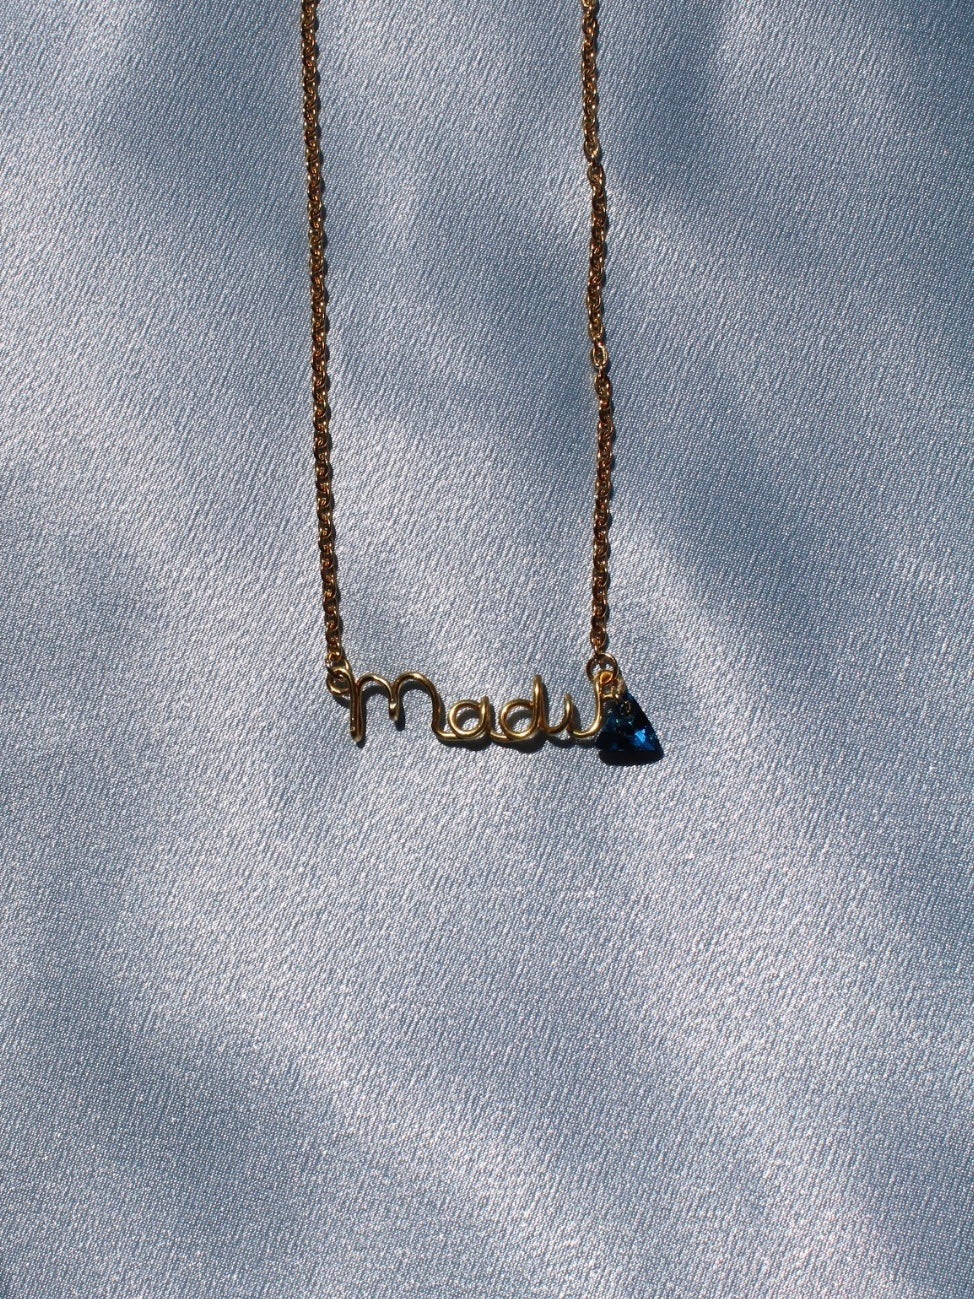 Custom name necklace with Brasileira Swarovski crystal